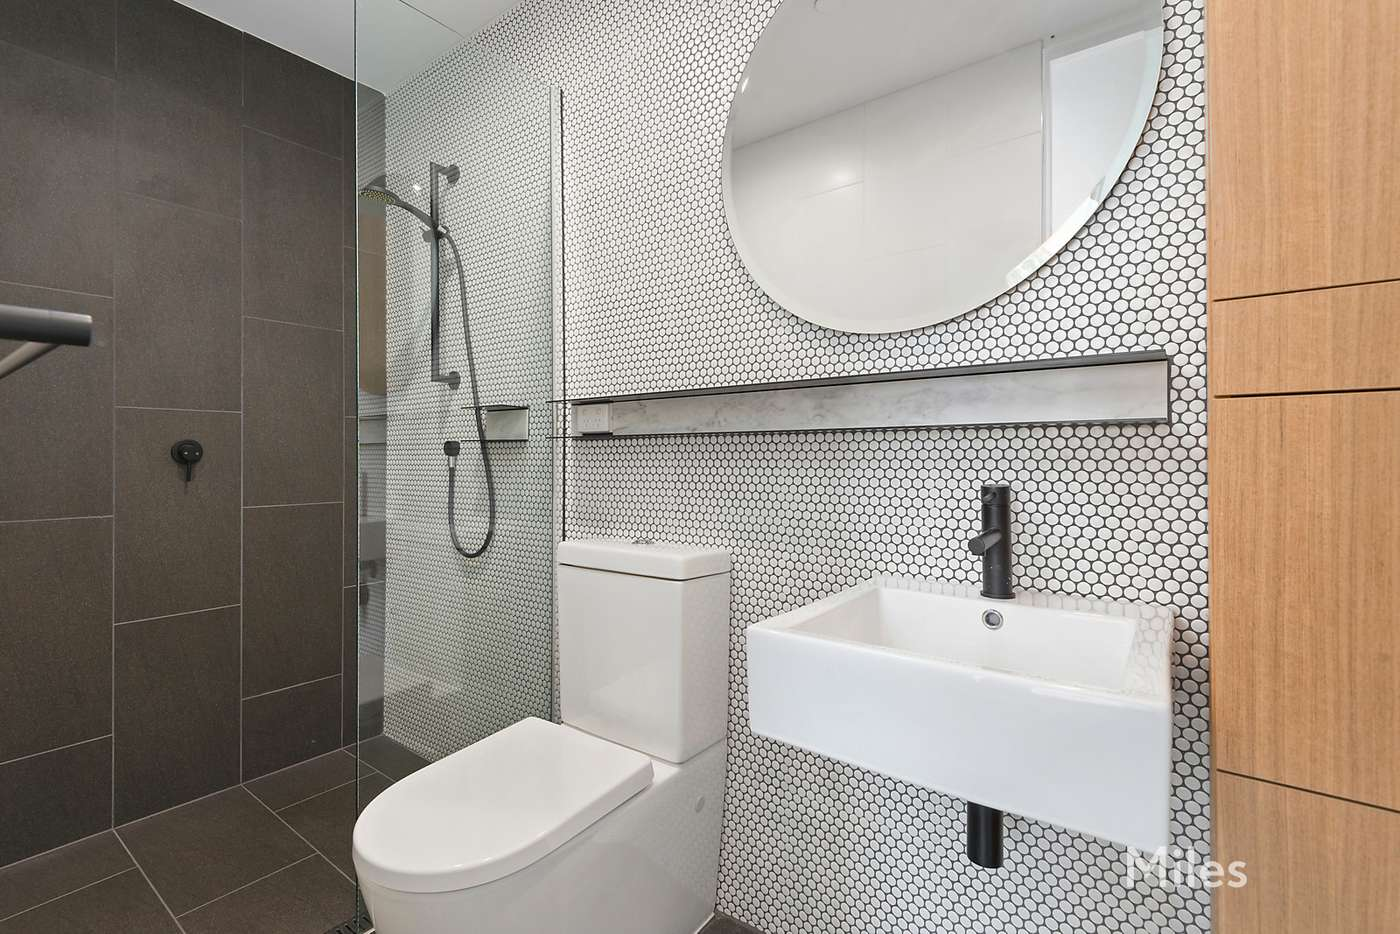 Fifth view of Homely apartment listing, 206/204-206 Lower Heidelberg Road, Ivanhoe East VIC 3079